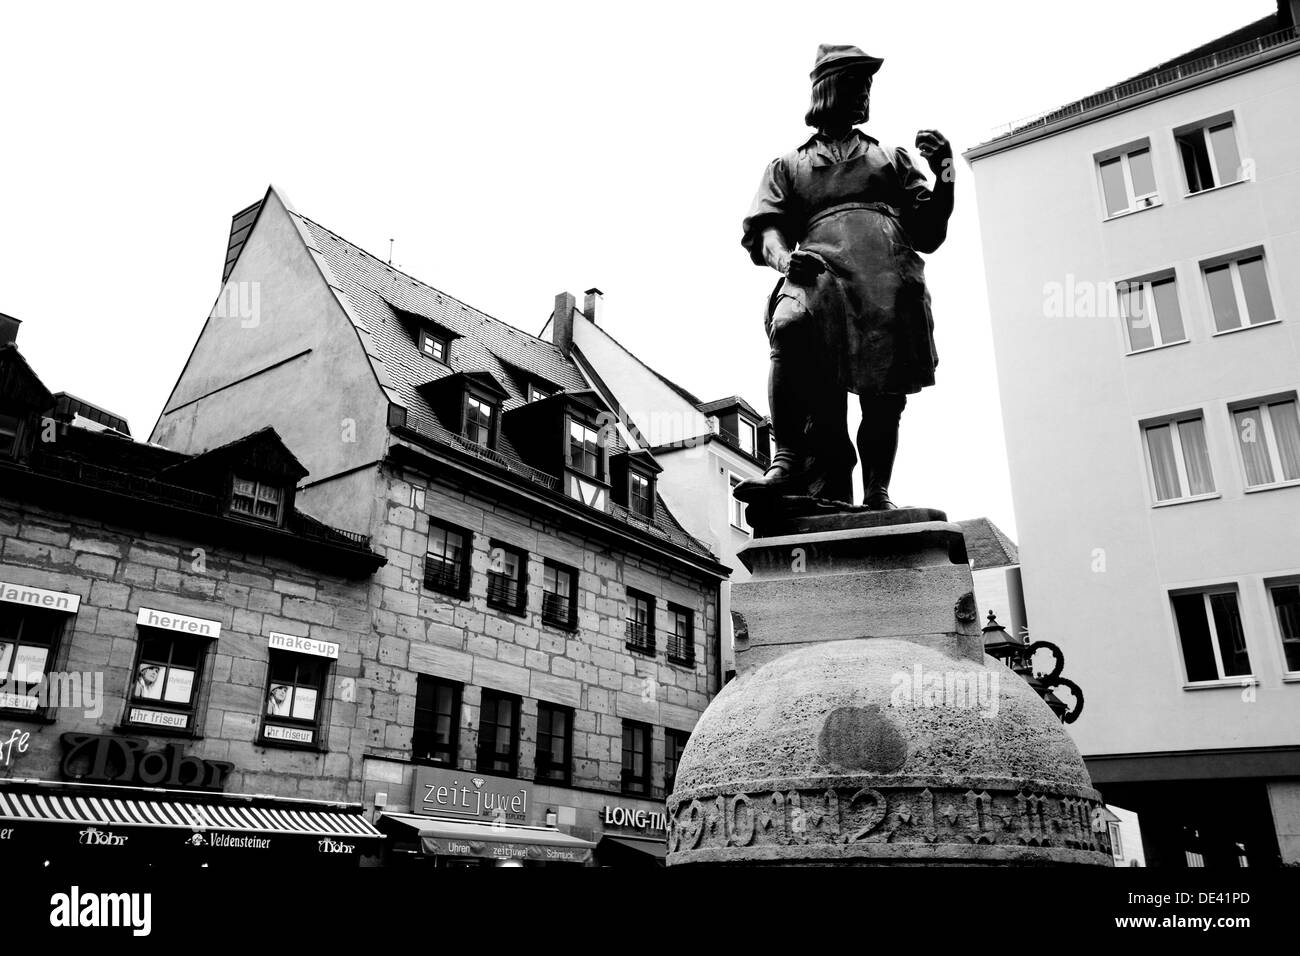 Germany Nurnberg Statue and Old architecture - Stock Image